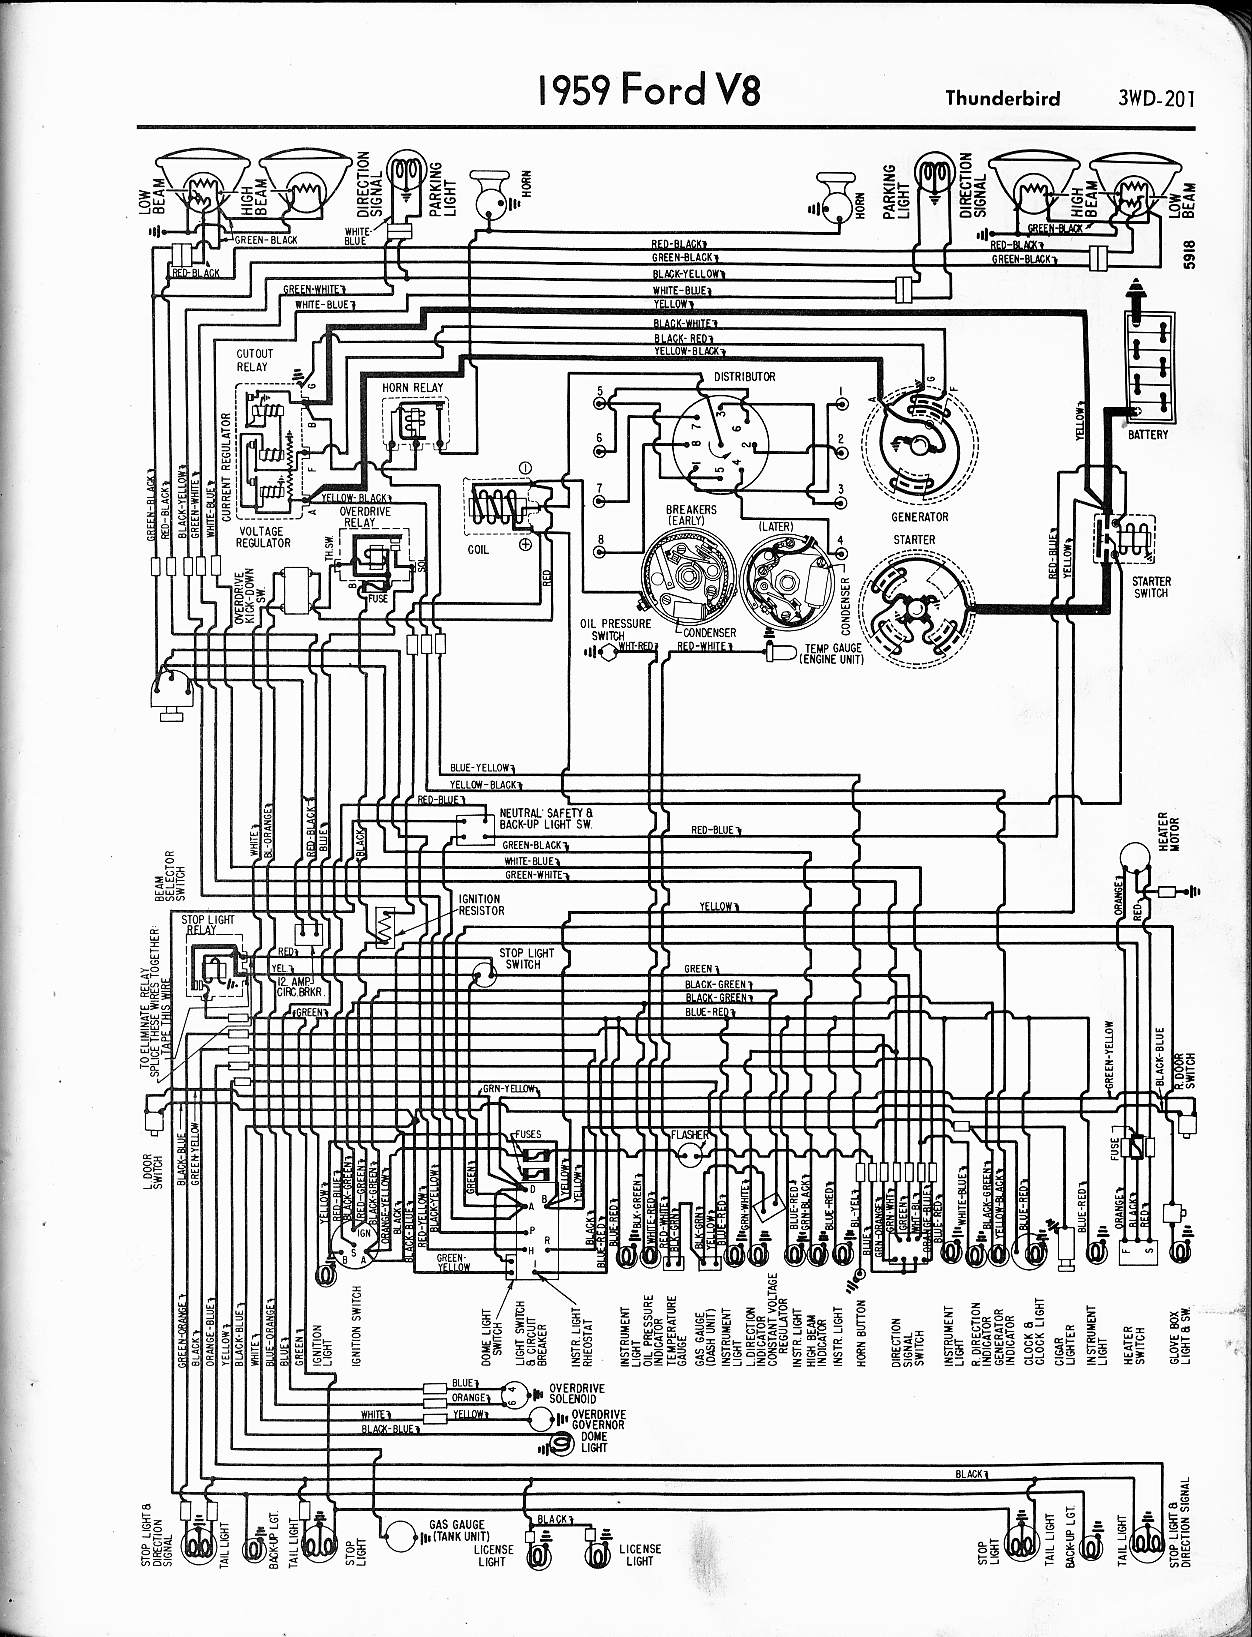 1968 Ford Ranchero Wiring Diagram Data For 1965 Falcon 1970 Schematic Name